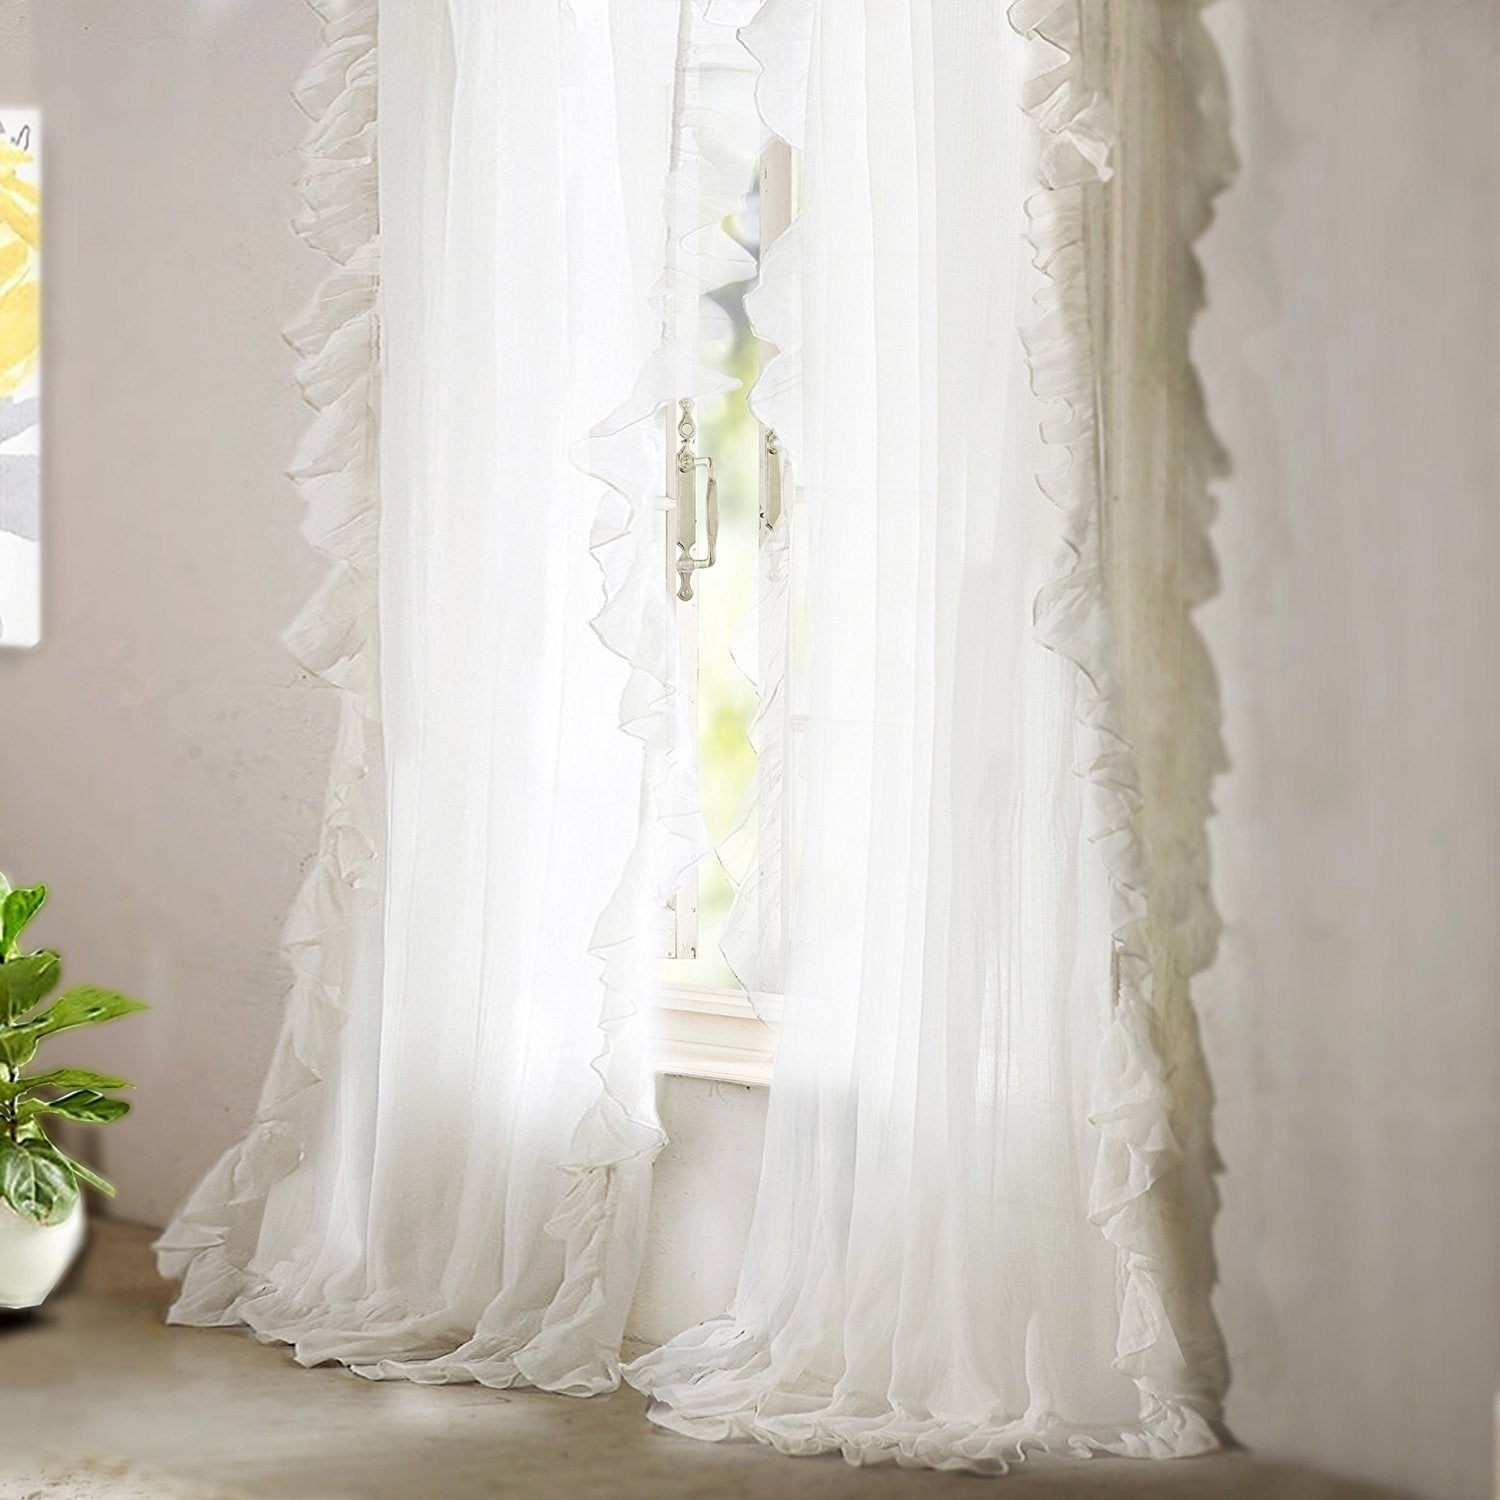 Driftaway Sophie Sheer Voile Ruffle Edge Window Curtain Panel Pair Intended For Sheer Voile Ruffled Tier Window Curtain Panels (View 11 of 20)